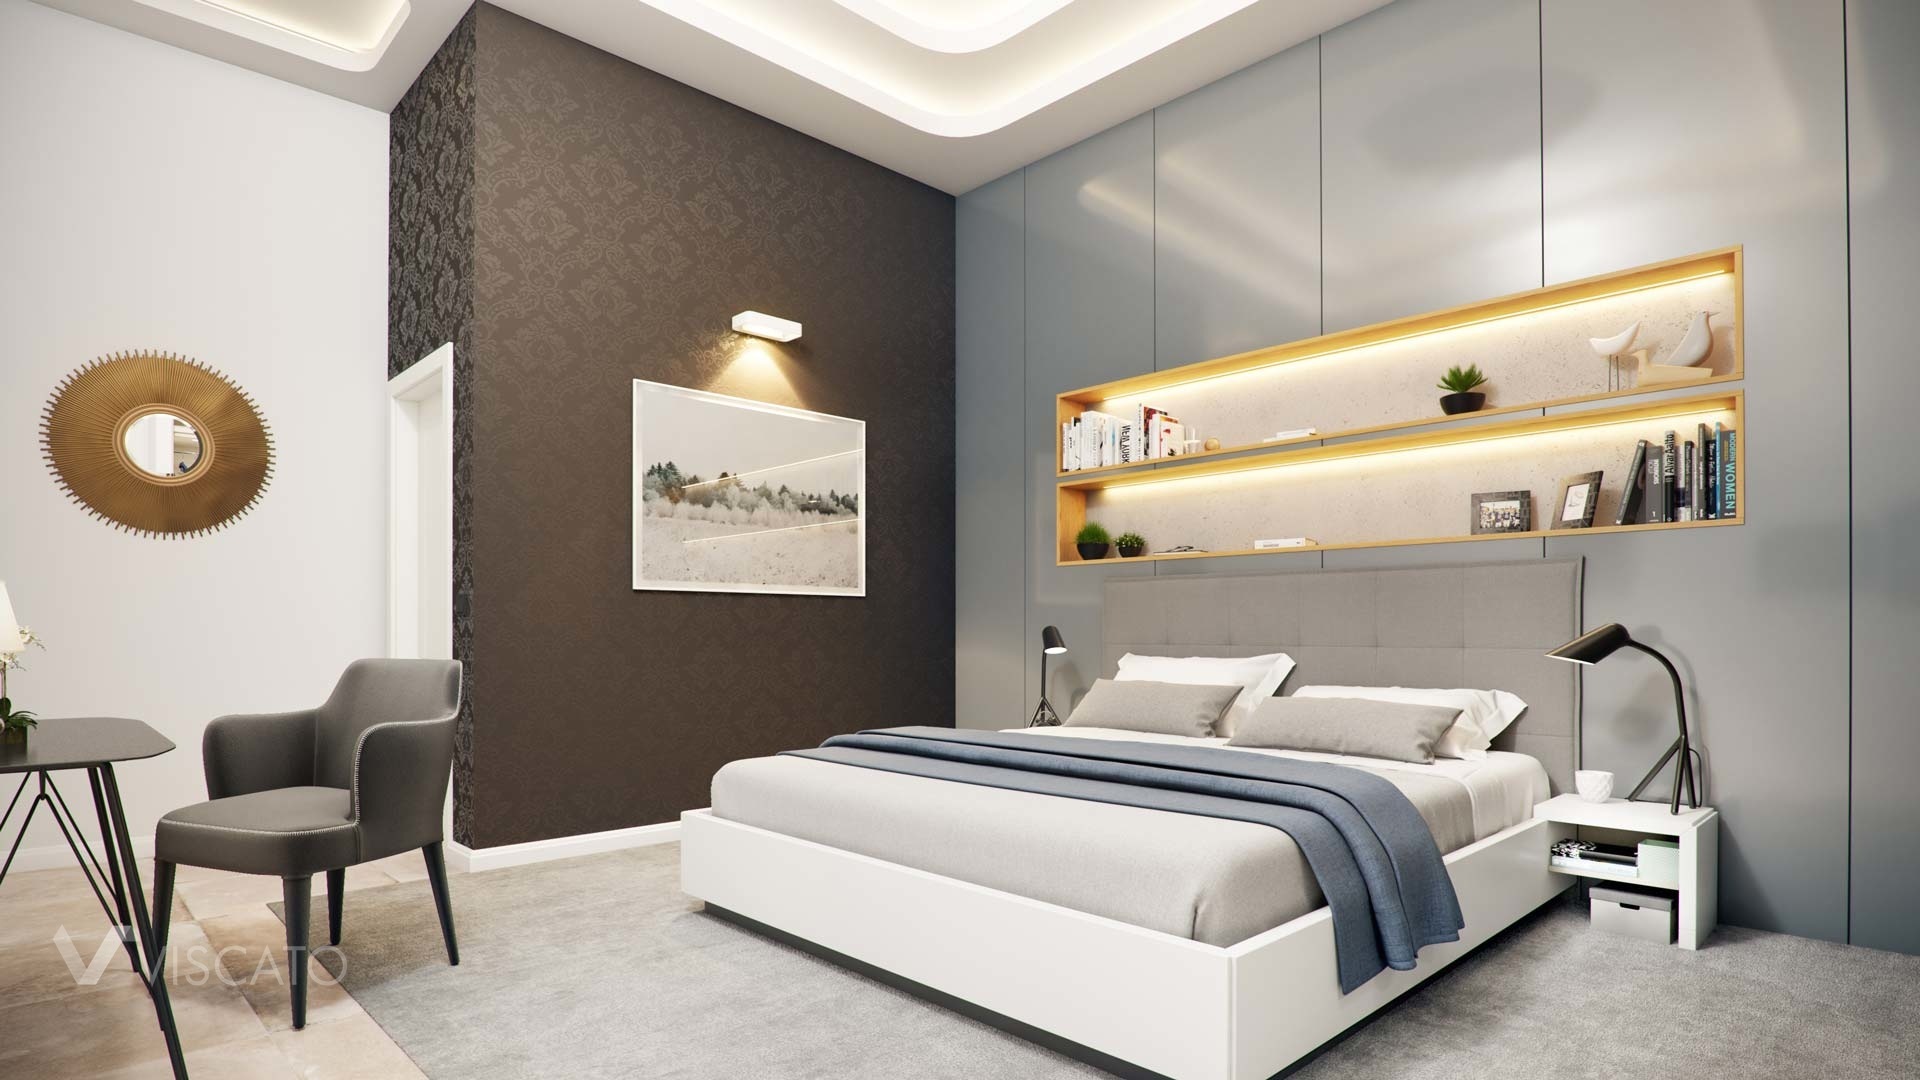 3d interior visualization of a modern bedroom- Viscato